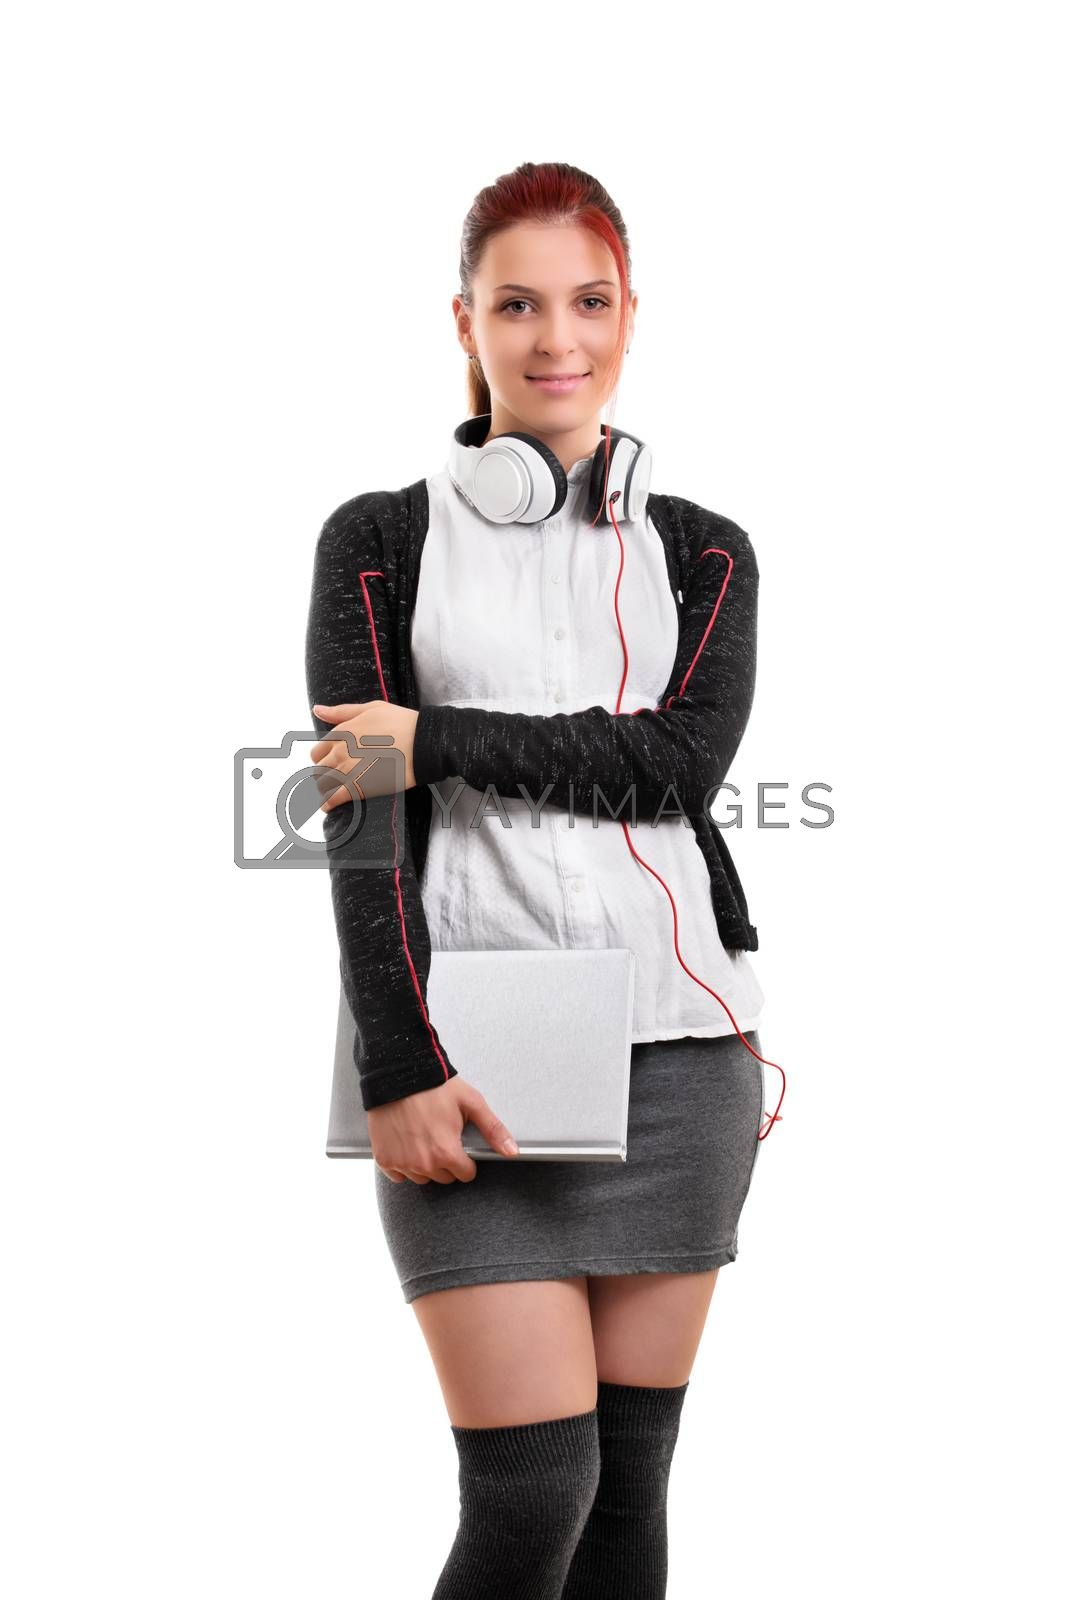 Portrait of a beautiful smiling student with headphones and a book, ready for class, isolated on white background.